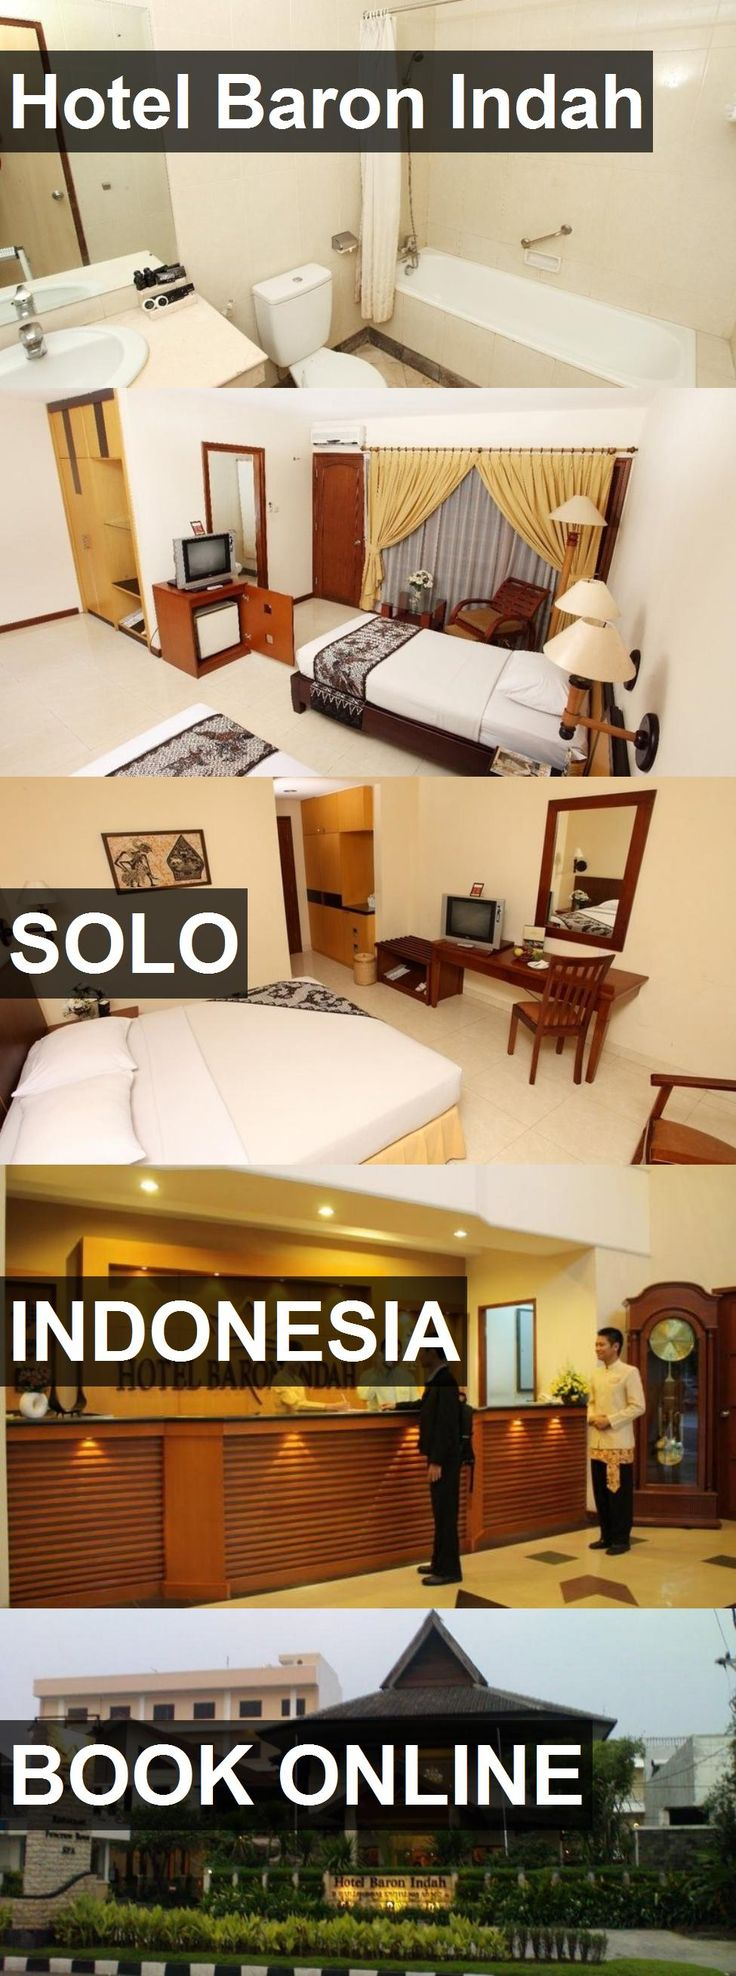 Hotel Hotel Baron Indah in Solo, Indonesia. For more information, photos, reviews and best prices please follow the link. #Indonesia #Solo #hotel #travel #vacation